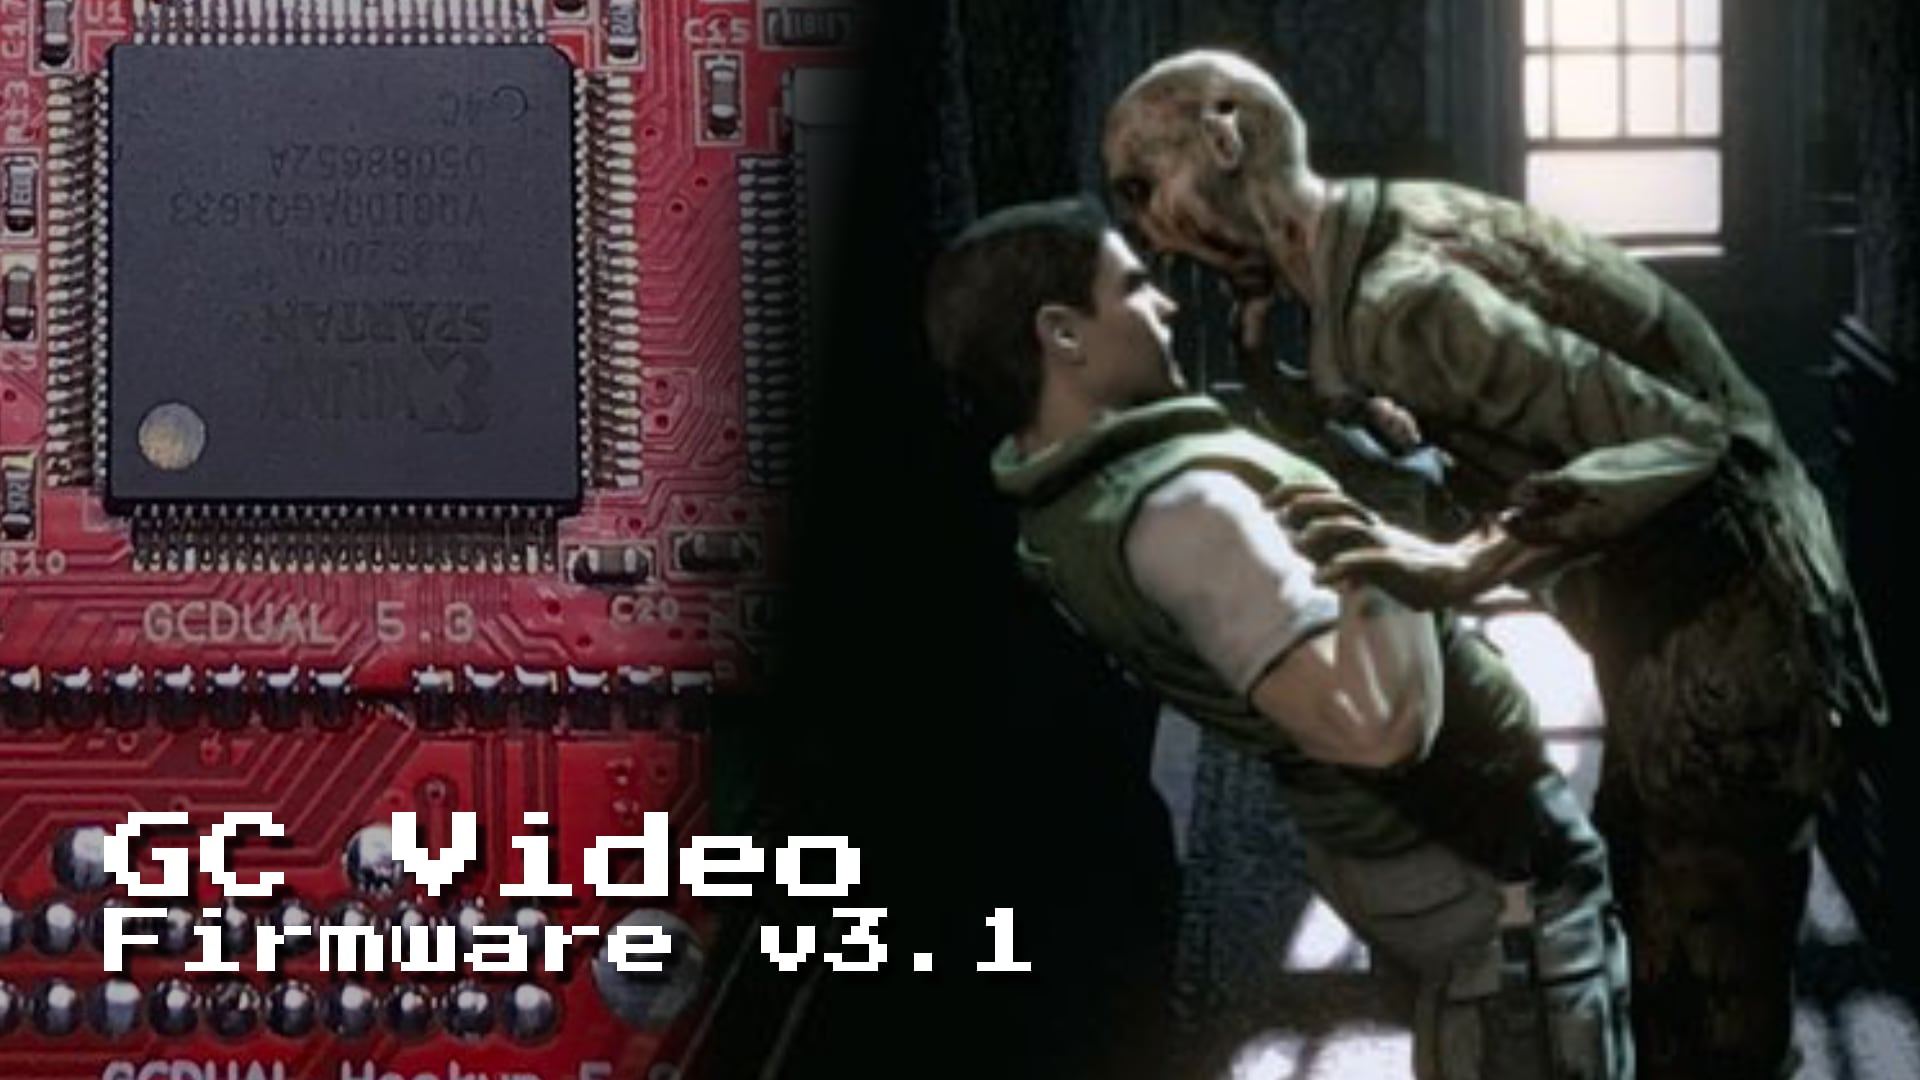 GCVideo Firmware 3.1 Released